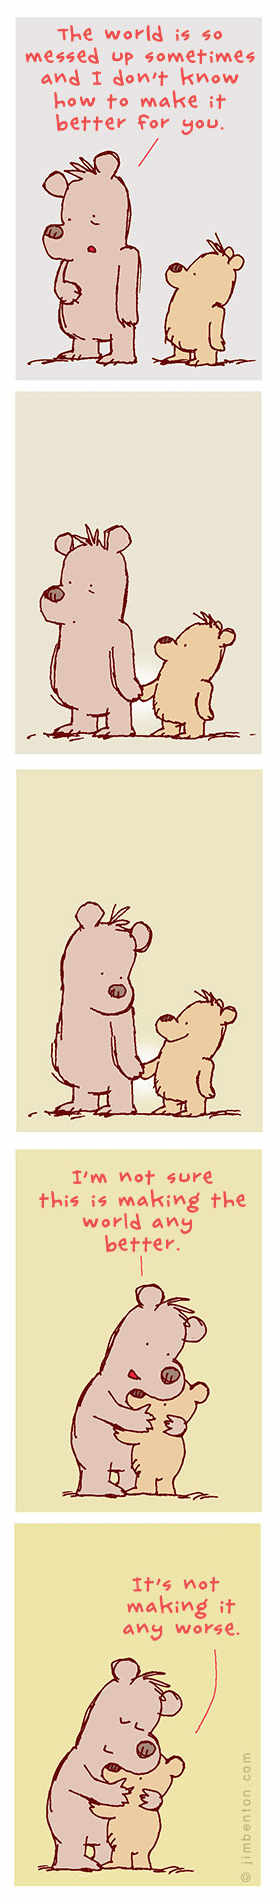 bears jim benton hugs comic